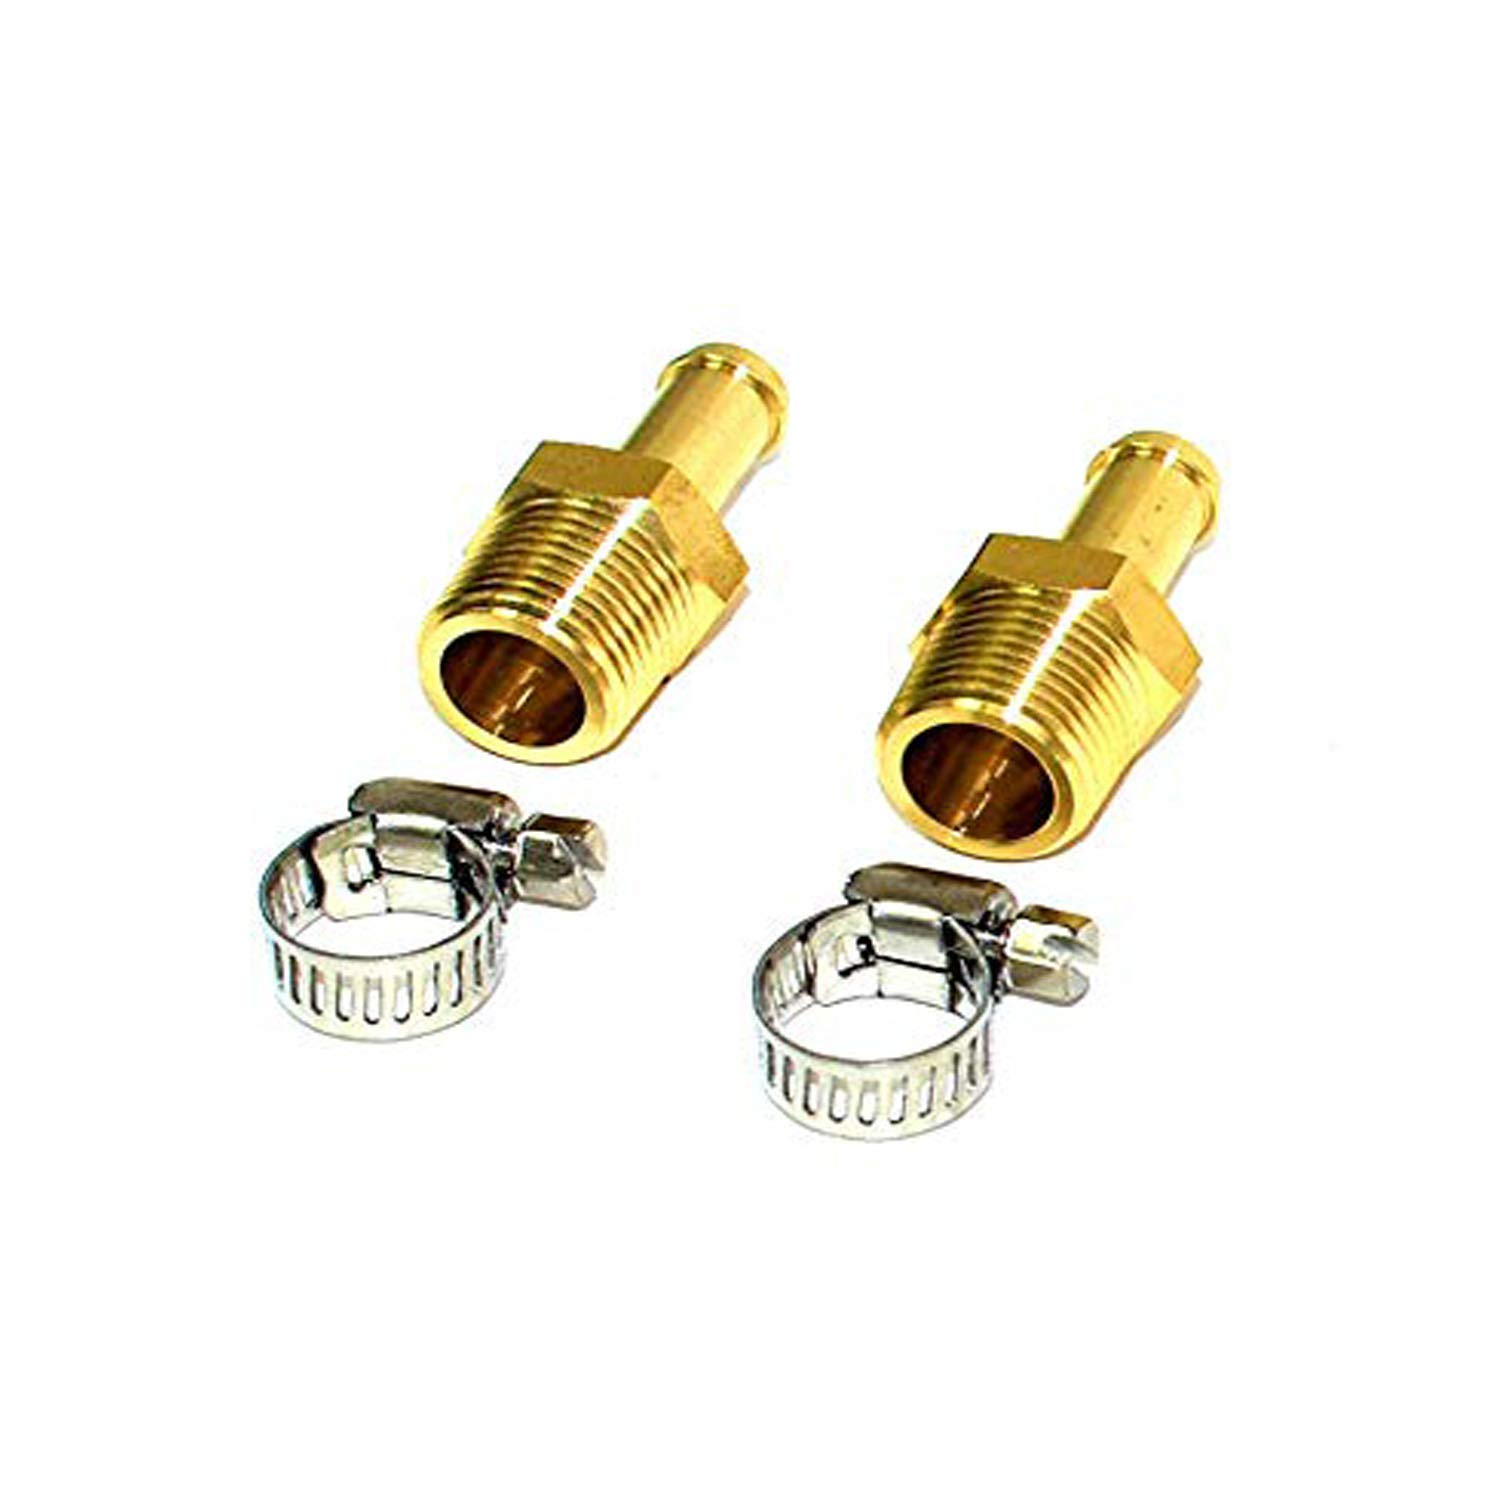 A-Team Performance 3//8-Inch National Pipe Thread Brass with 2 Hose Clamps Fittings /— NPT For Fuel Pumps and Regulators